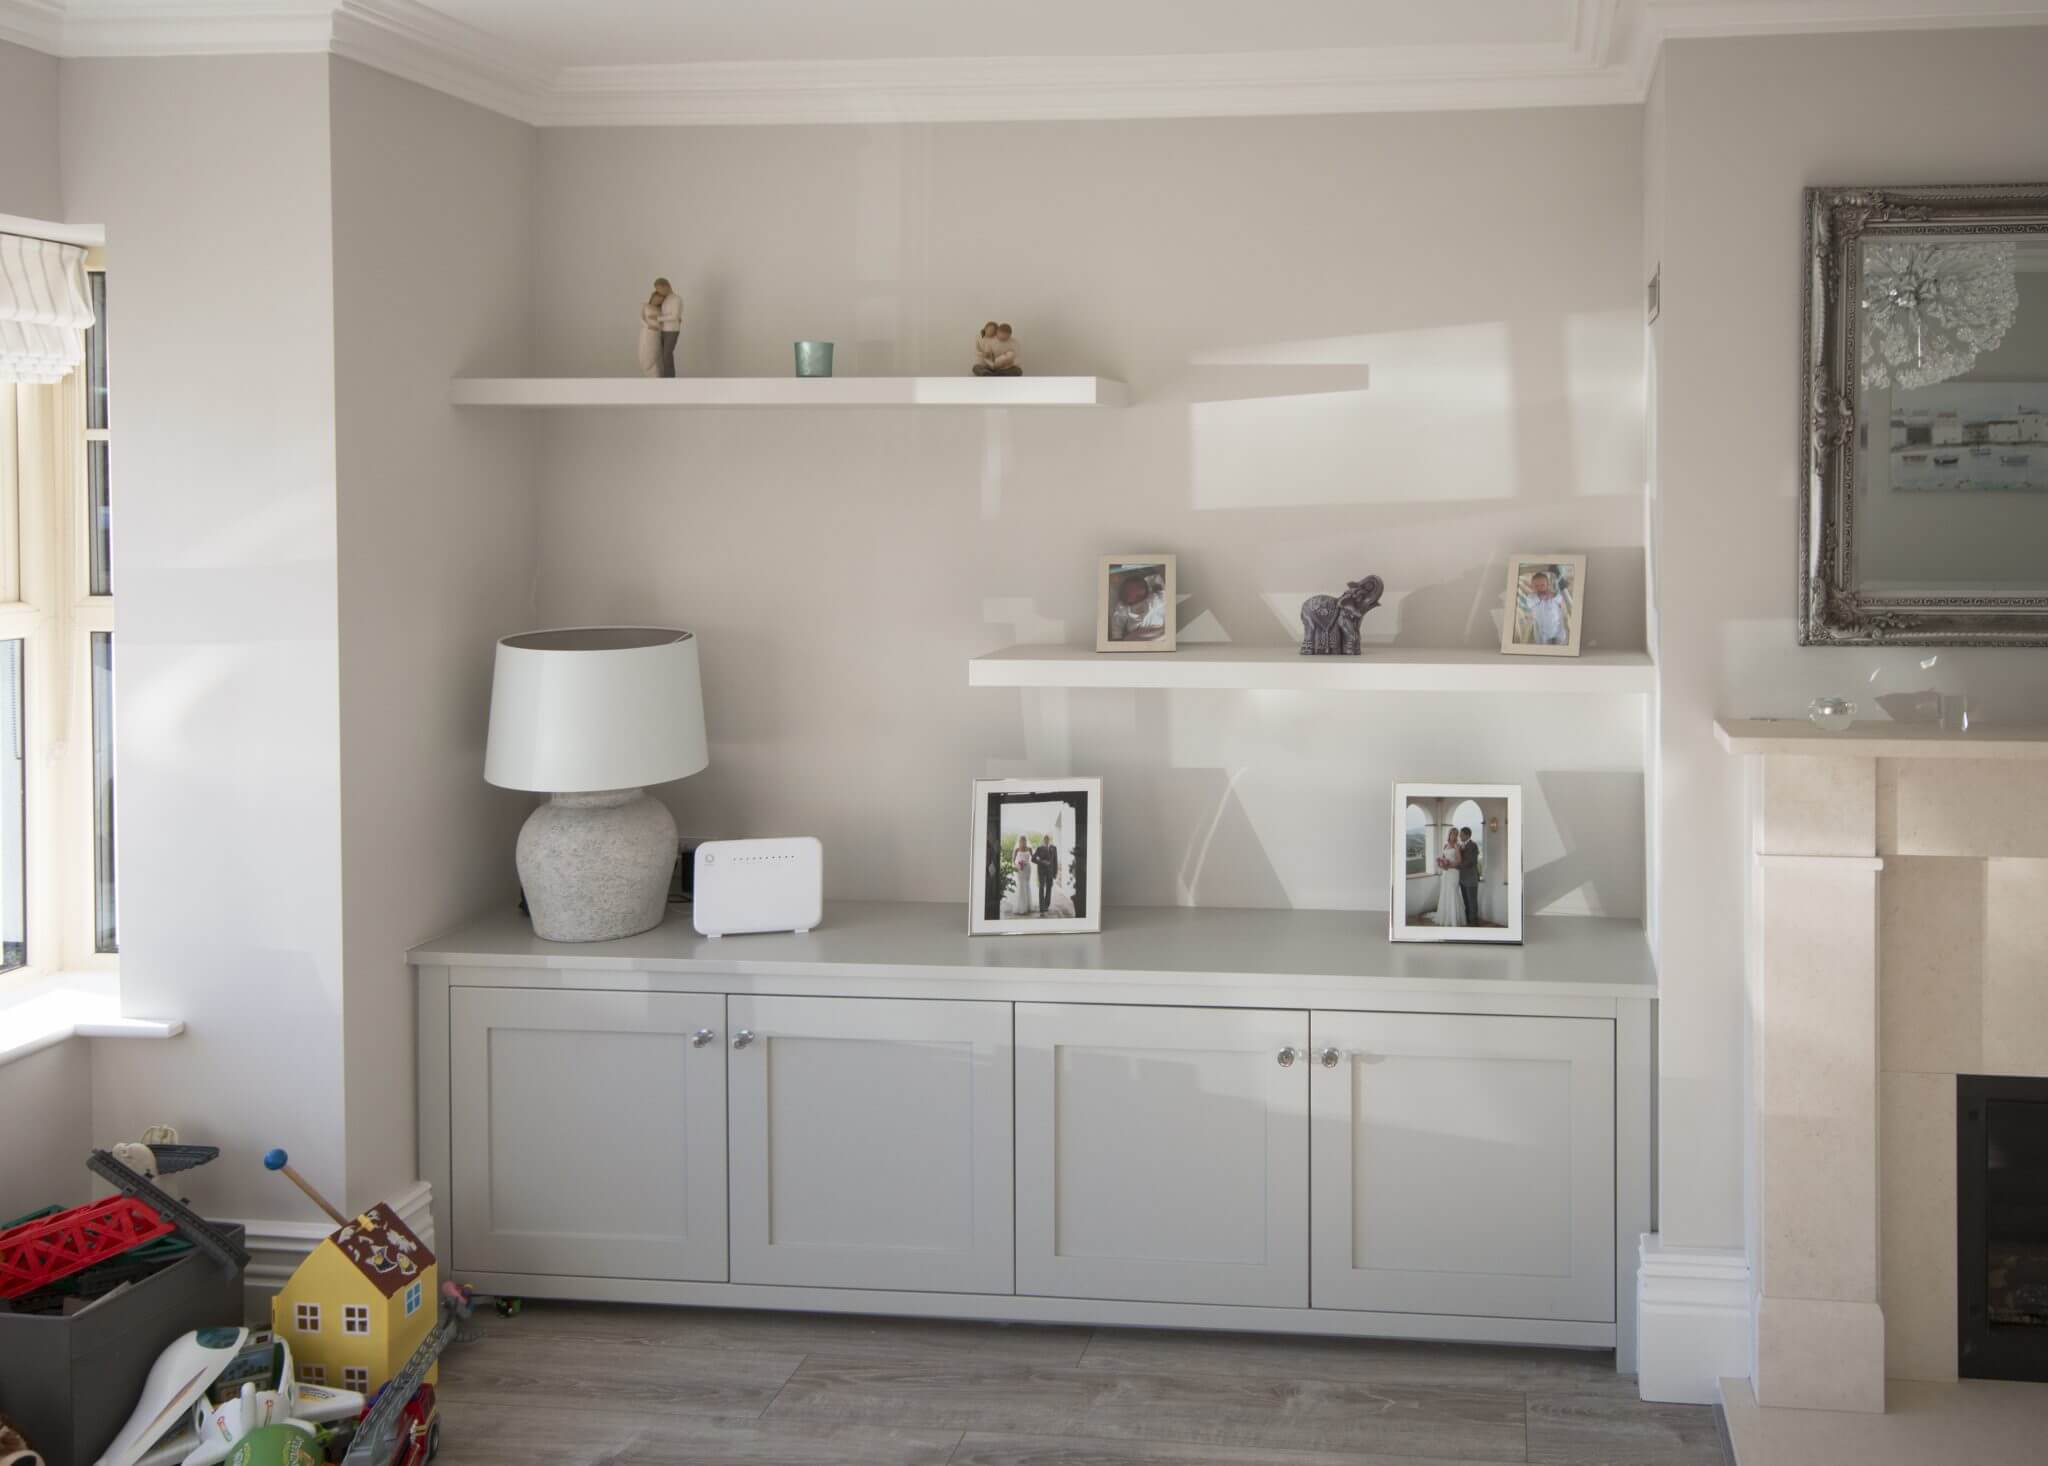 Alcove and Floating Shelves